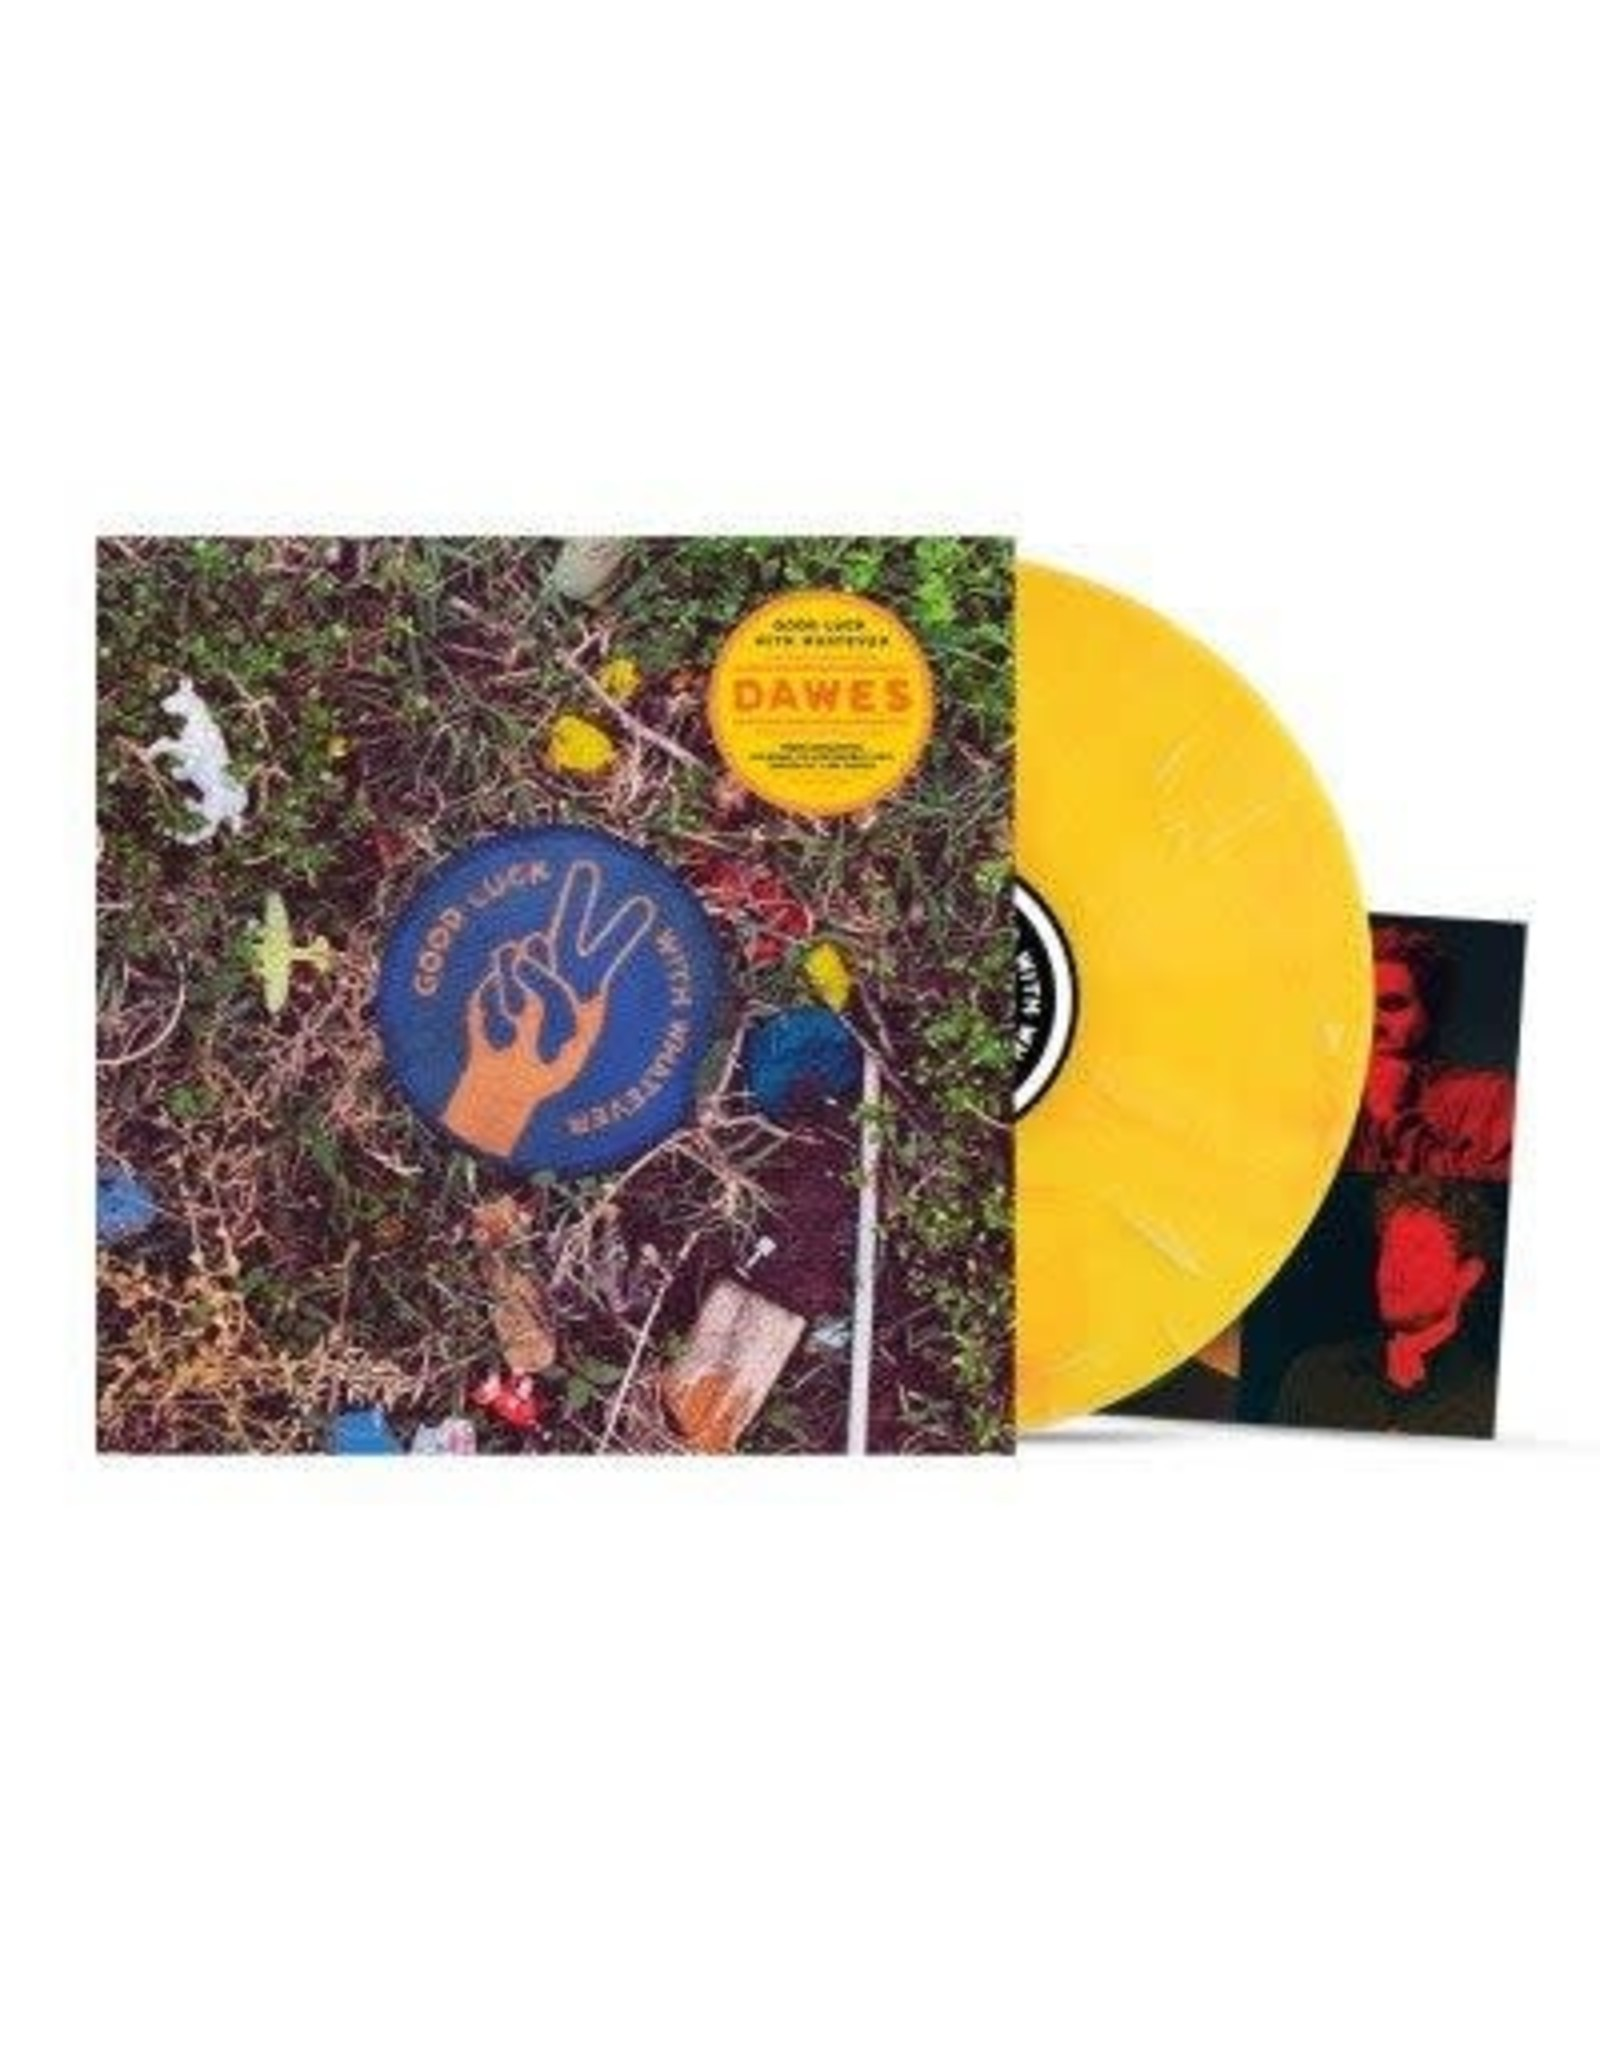 Dawes - Good Luck With Whatever (Exclusive Yellow Marble Vinyl)